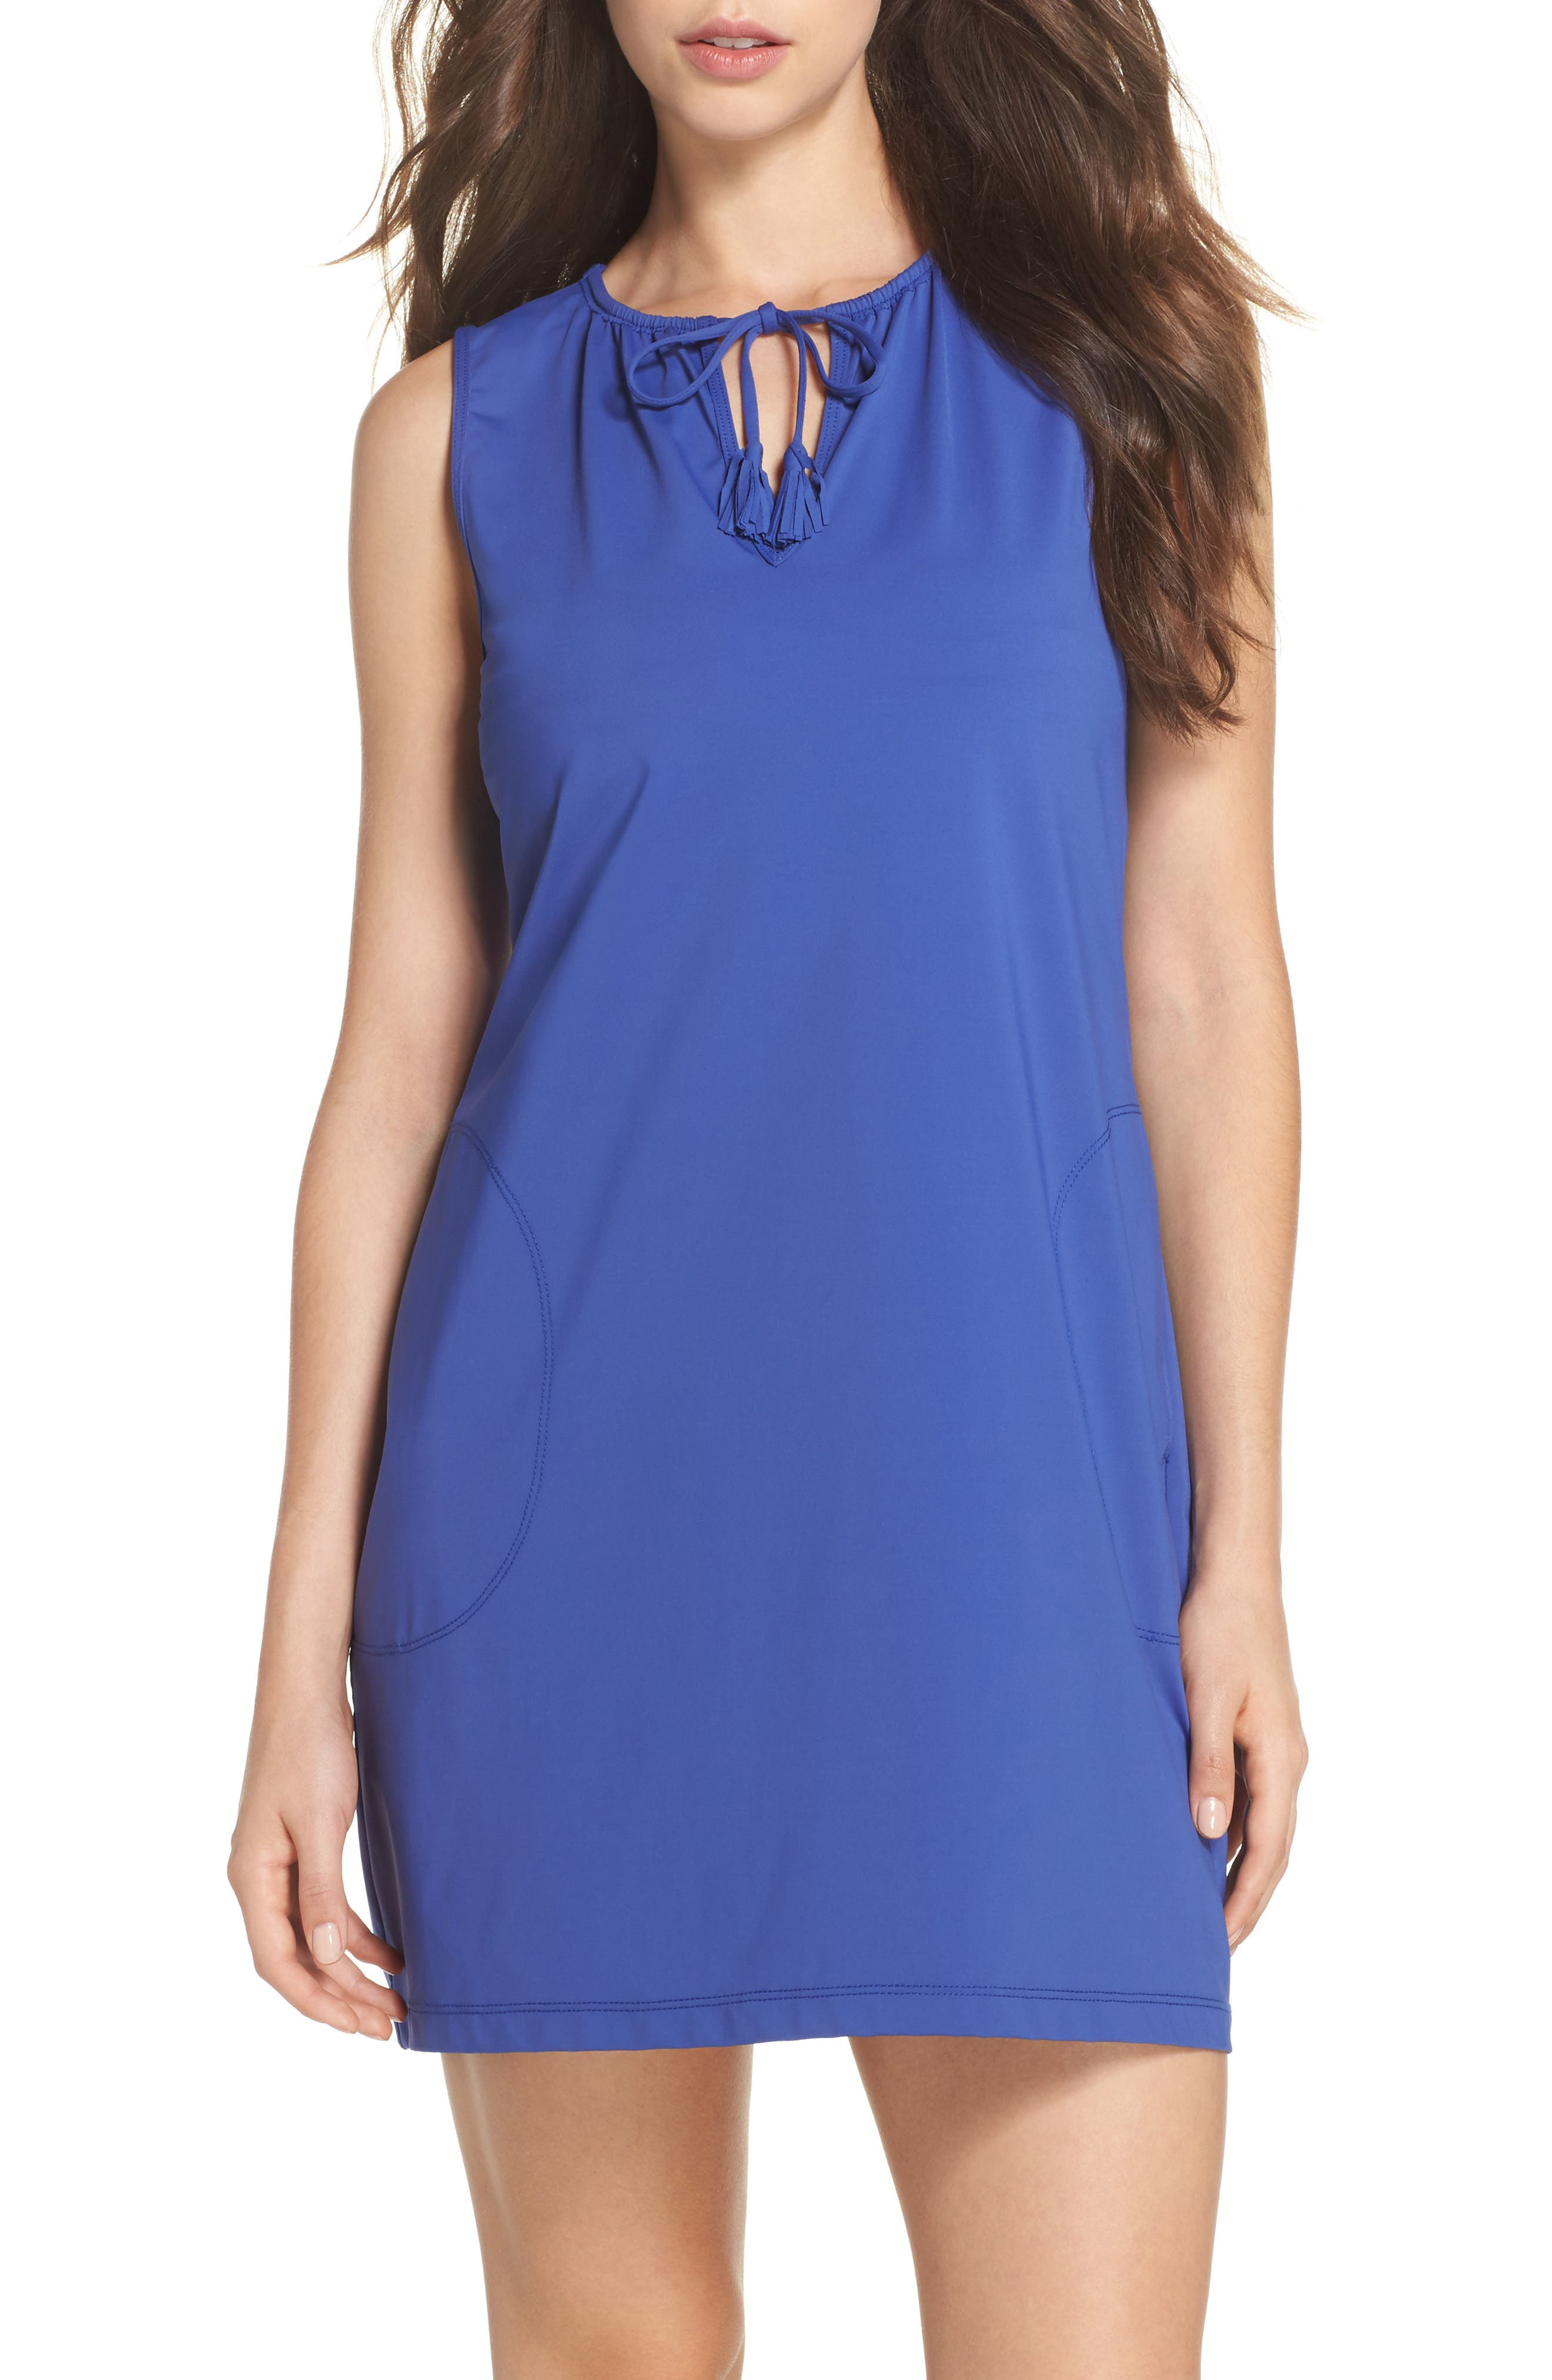 Main Image - Tommy Bahama 'Pearl' Split Neck Cover-Up Dress